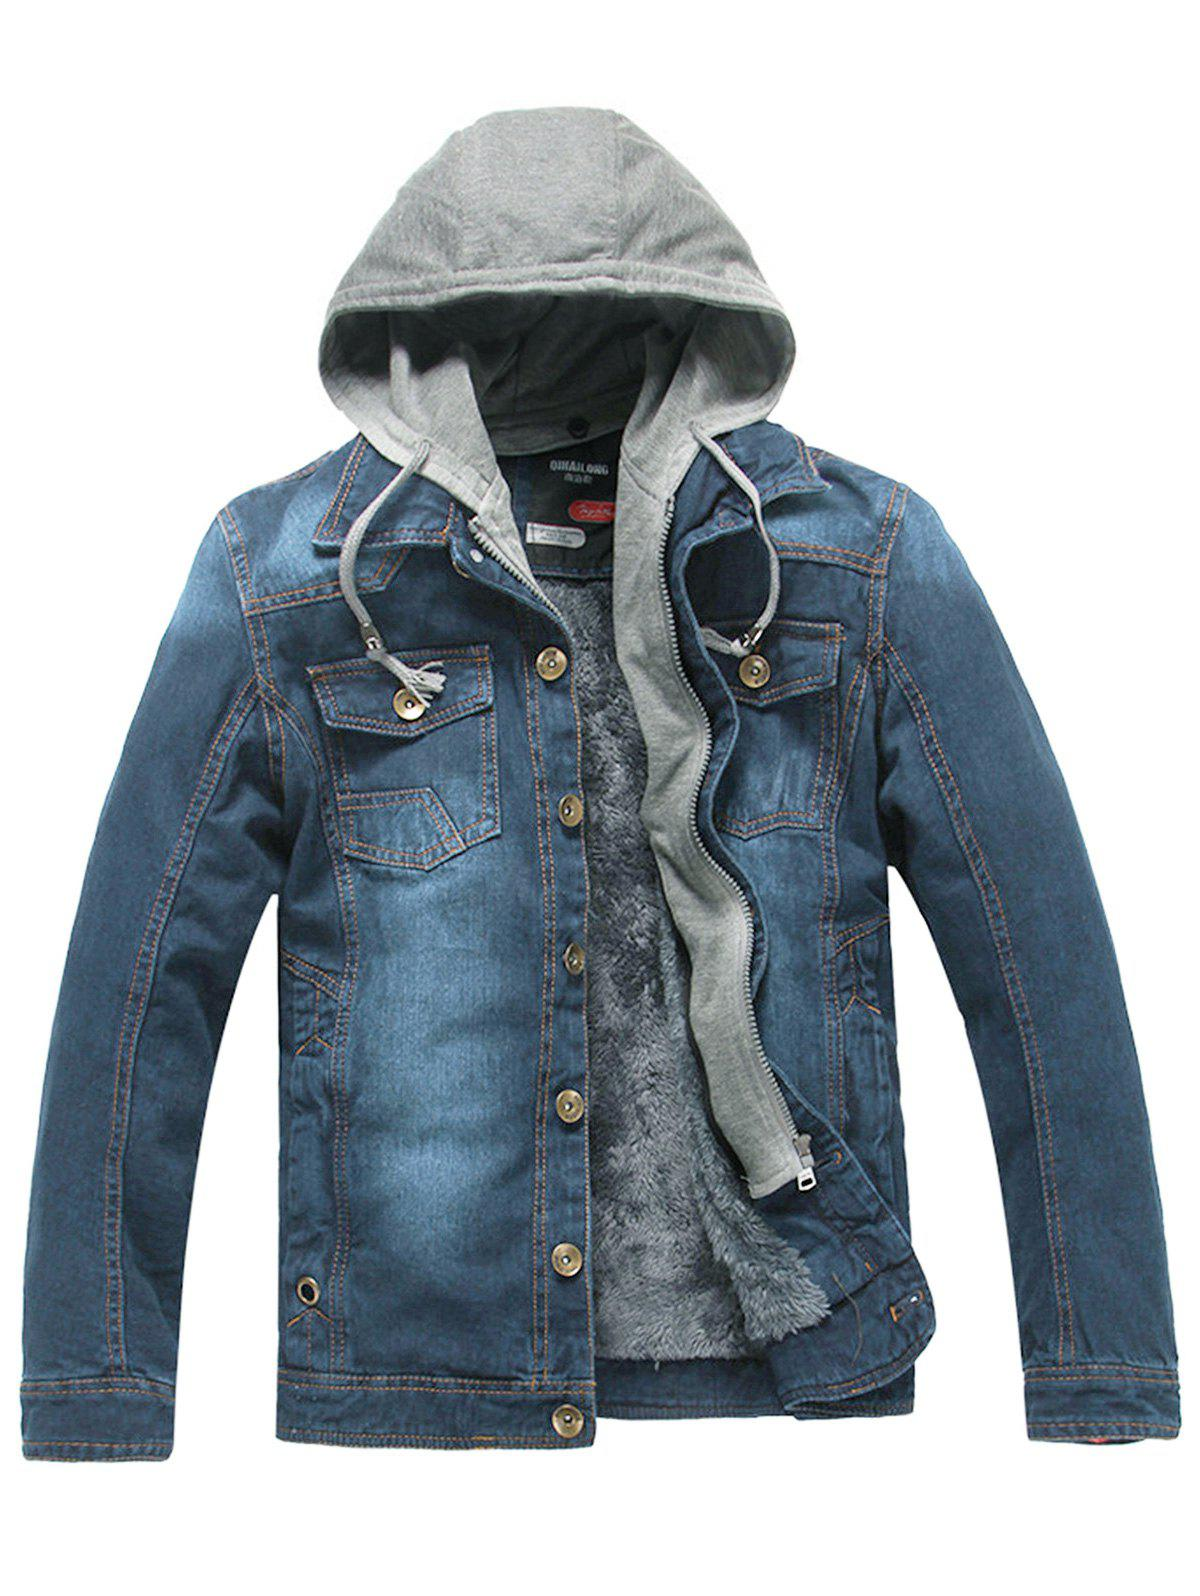 Drawstring Hooded Denim Jean Jacket - BLUE 2XL